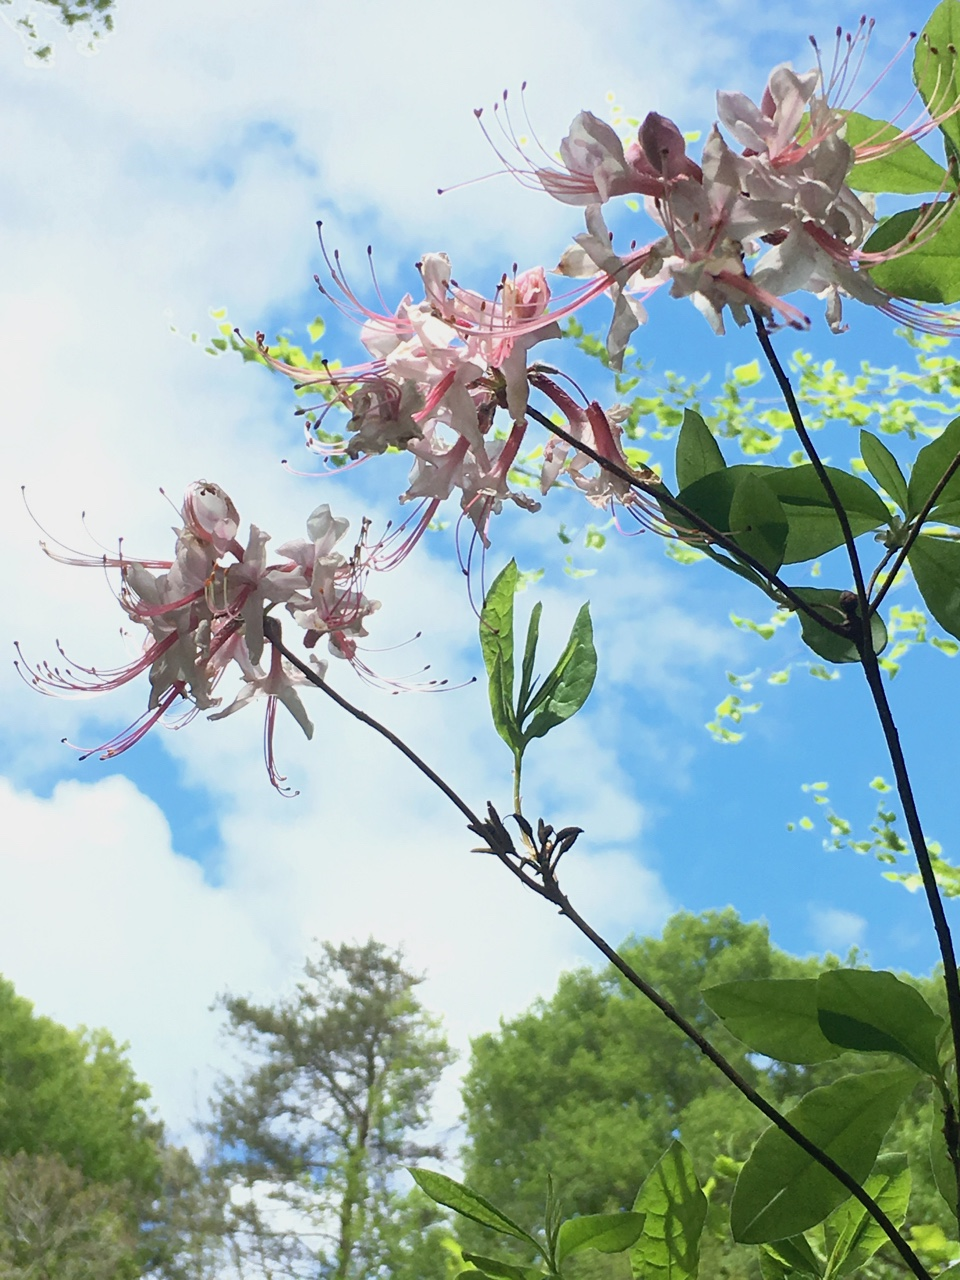 The Scientific Name is Rhododendron periclymenoides [= Rhododendron nudiflorum]. You will likely hear them called Pinxterflower, Pinxter-flower, Wild Honeysuckle, Swamp Honeysuckle, PInxterbloom, Wild Azalea. This picture shows the  of Rhododendron periclymenoides [= Rhododendron nudiflorum]